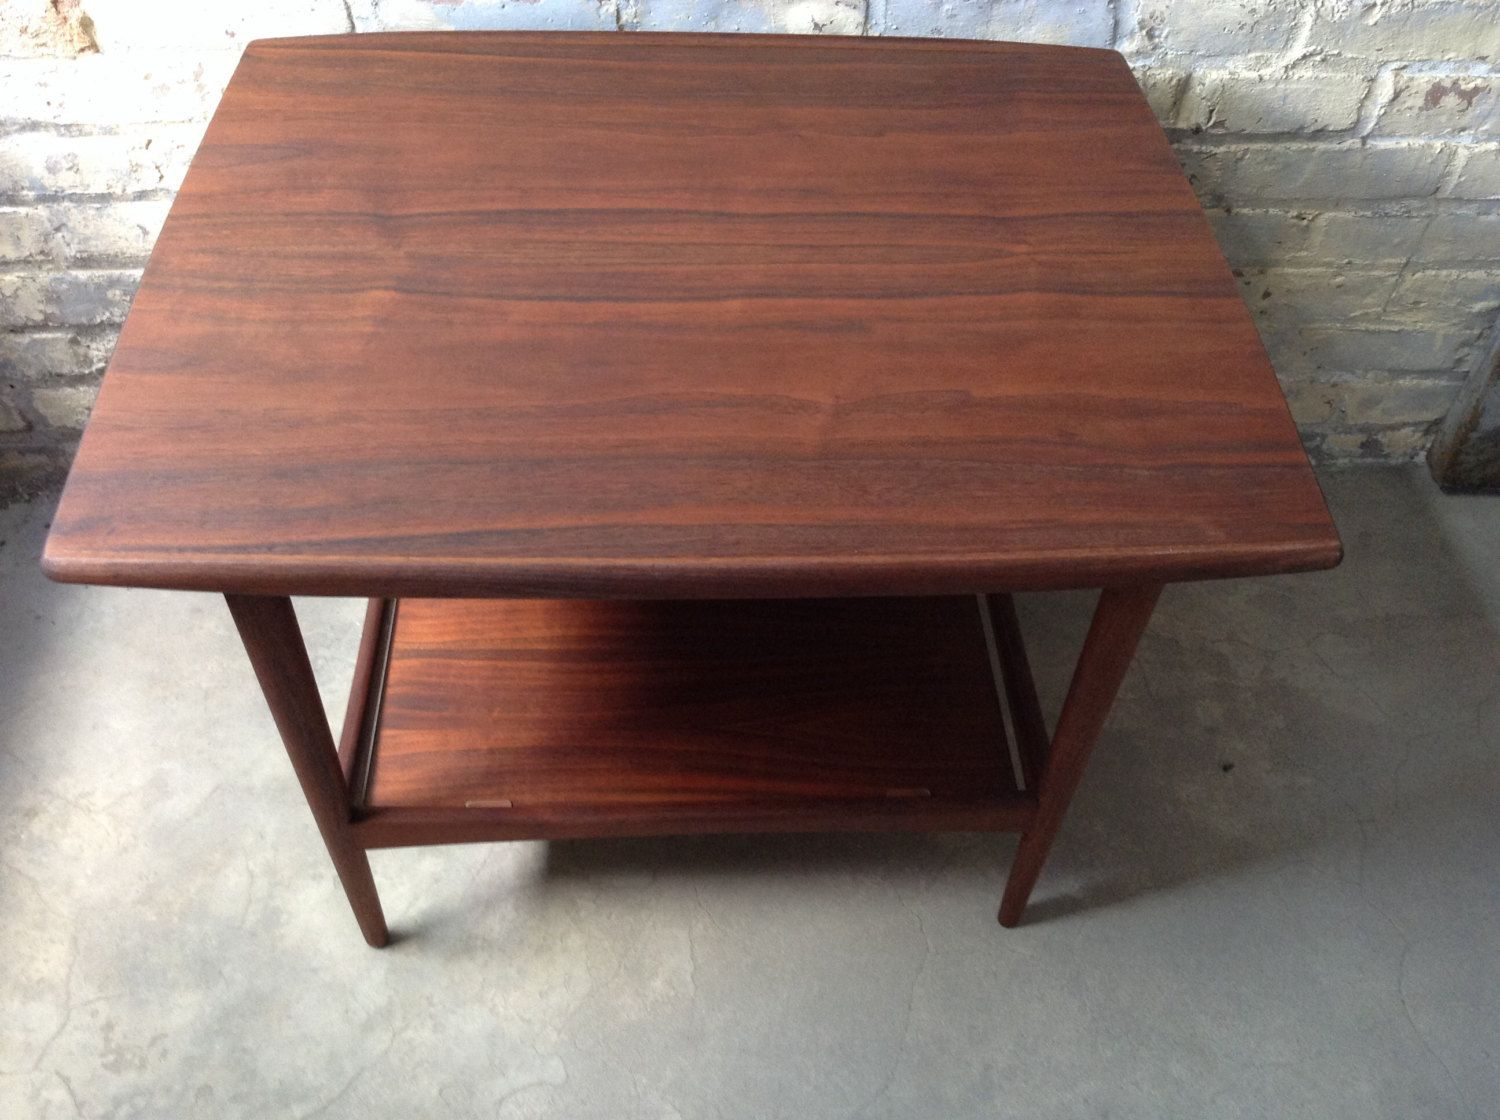 Vintage Moreddi Side End Table Modern Danish Teak Side Table Mid Century Teak Table Danish Side End Danish Teak Furniture Teak Side Table Teak Furniture